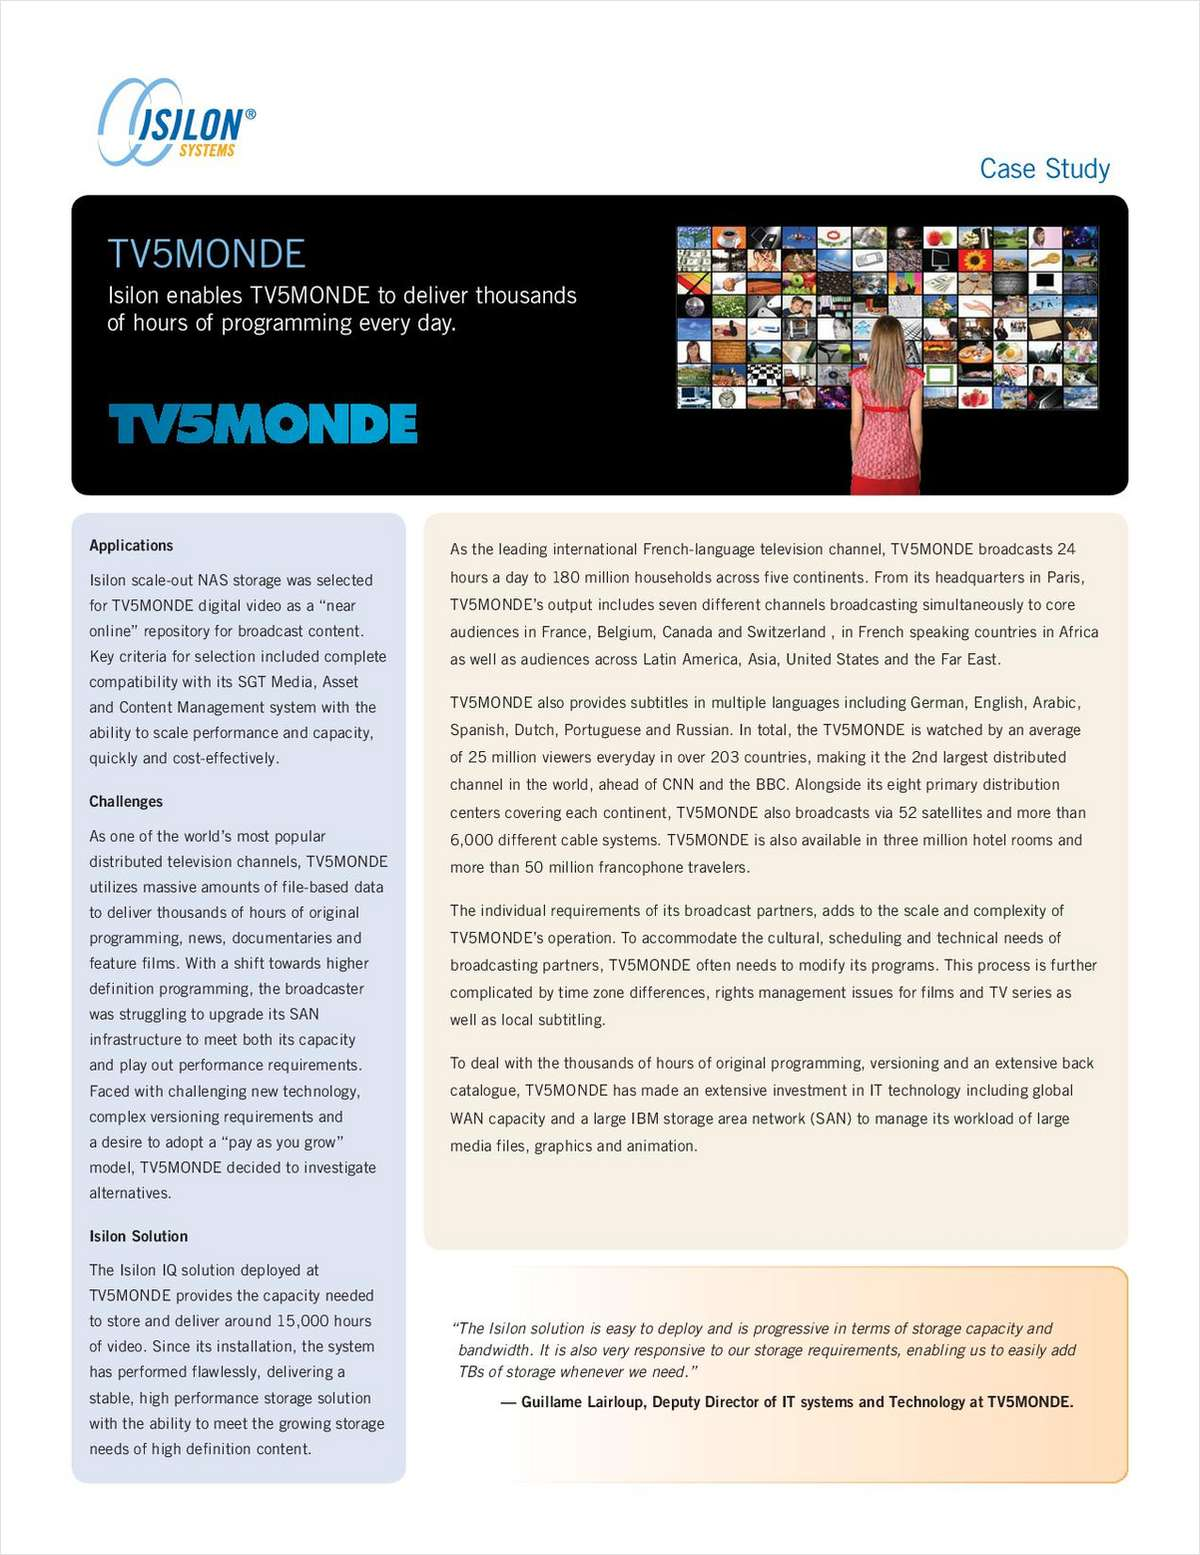 Case Study: TV5MONDE Delivers Programming 24 Hours a Day